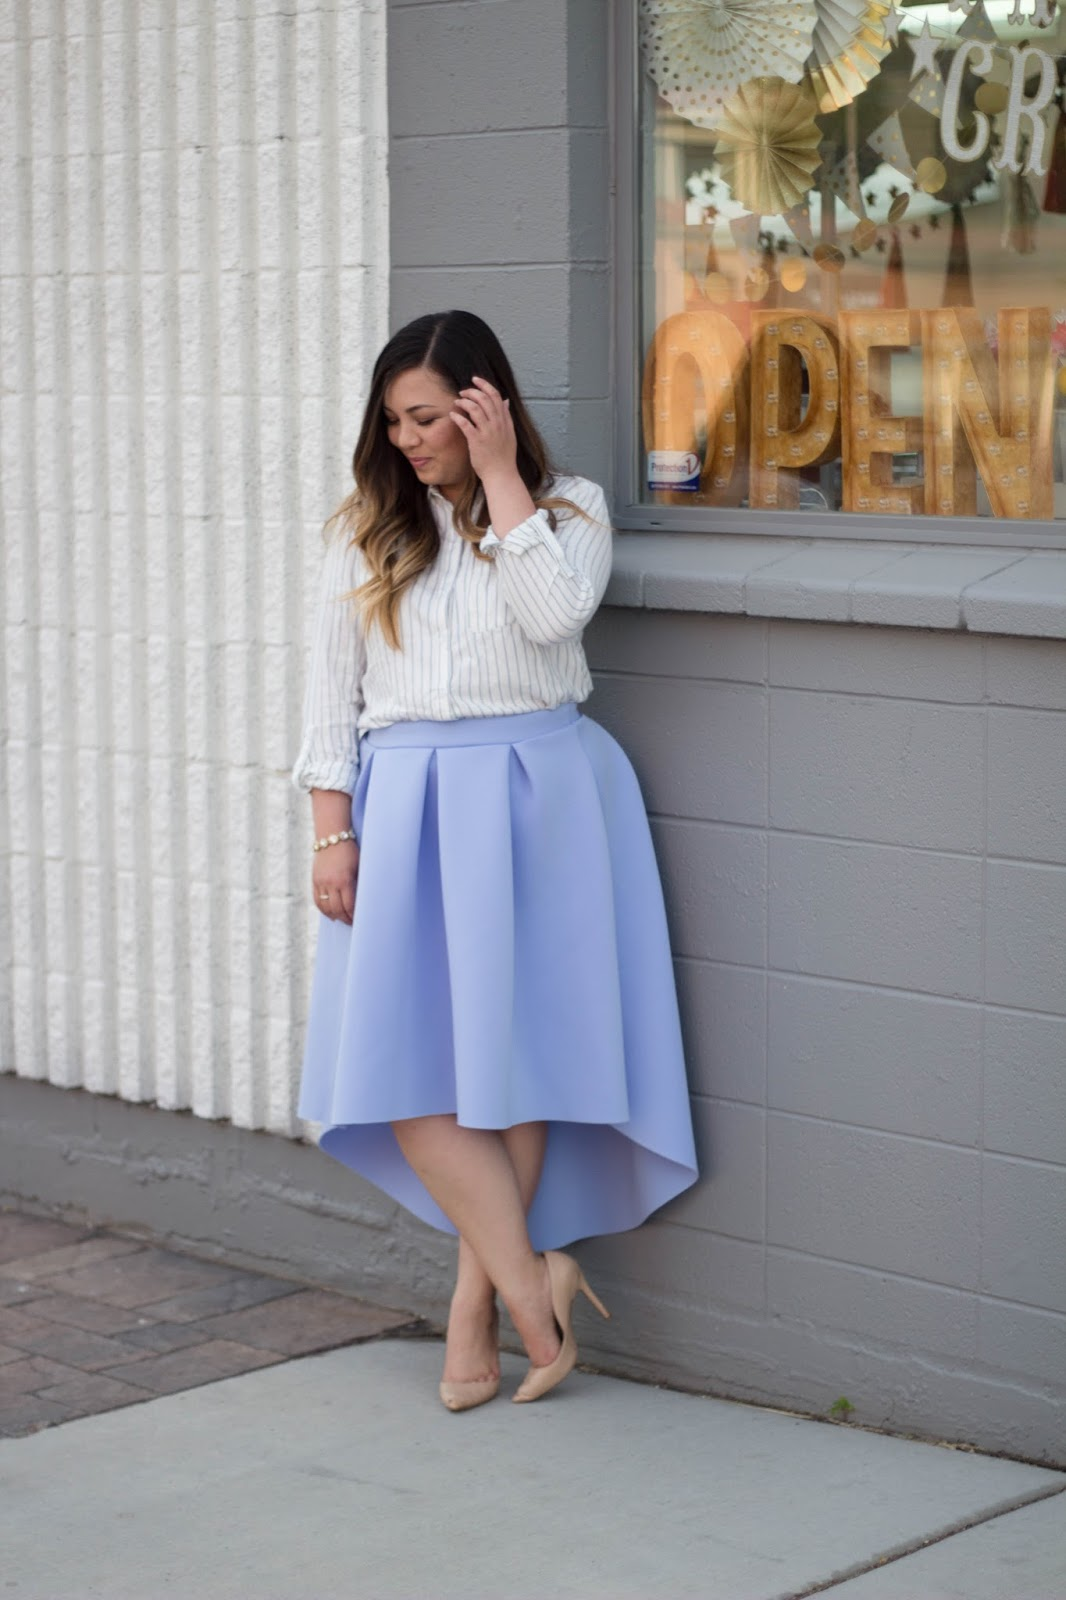 modest fashion, modest style, lds blogger, lds fashion, modest clothing, cute modest clothing, dress modestly, being a lady, ladylike, mormon blogger, utah blogger